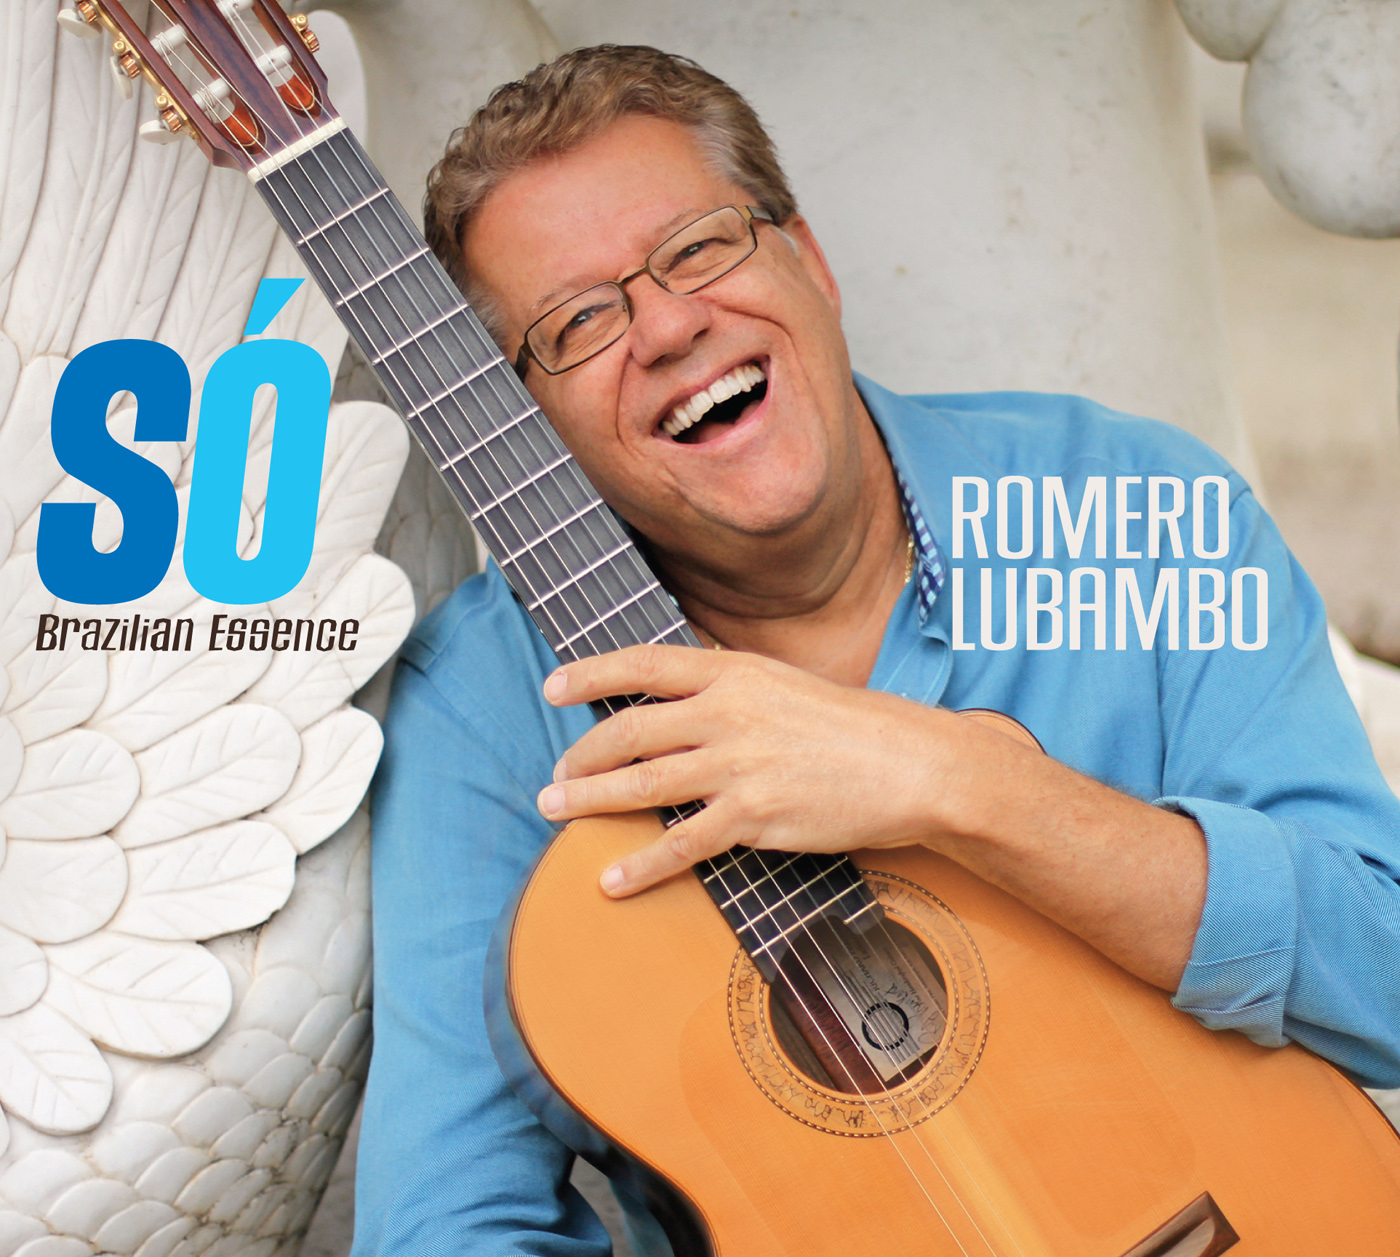 Só Brazilian Essence  by Romero  Lubambo cover